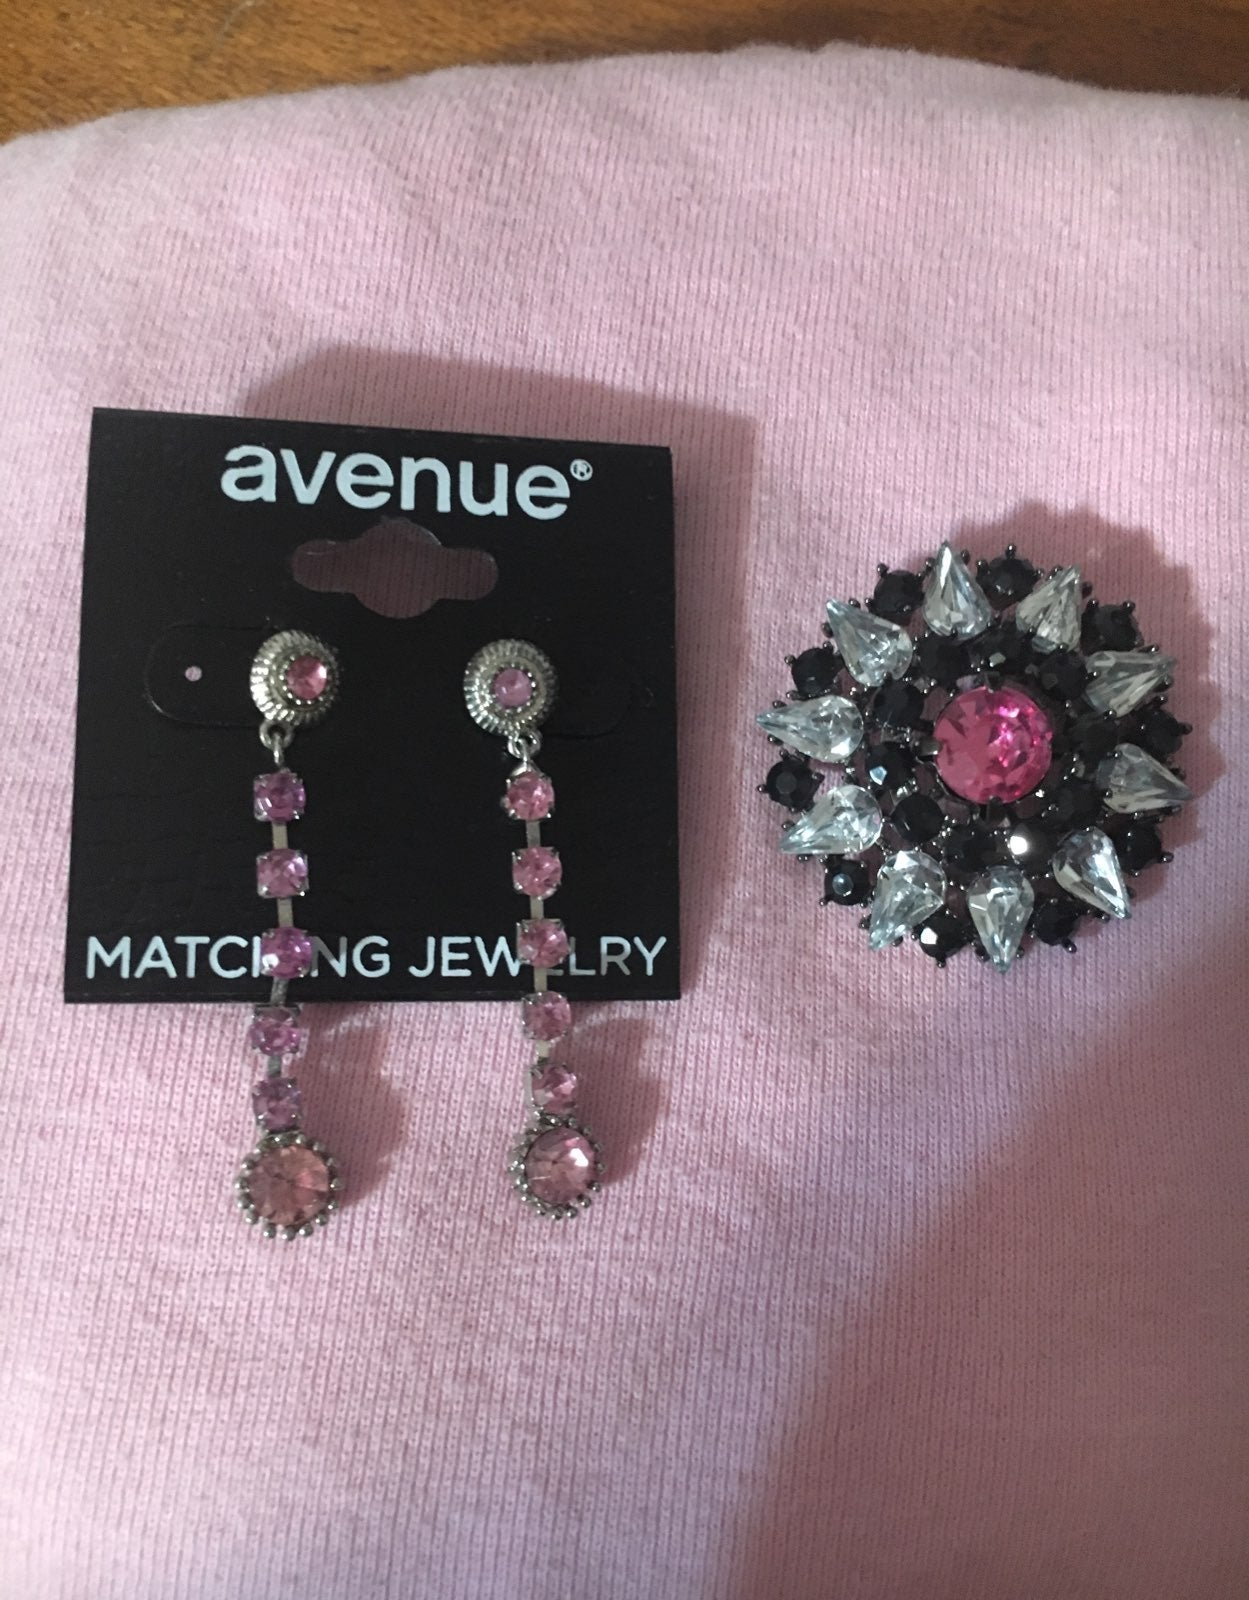 A pair of earrings and a pin